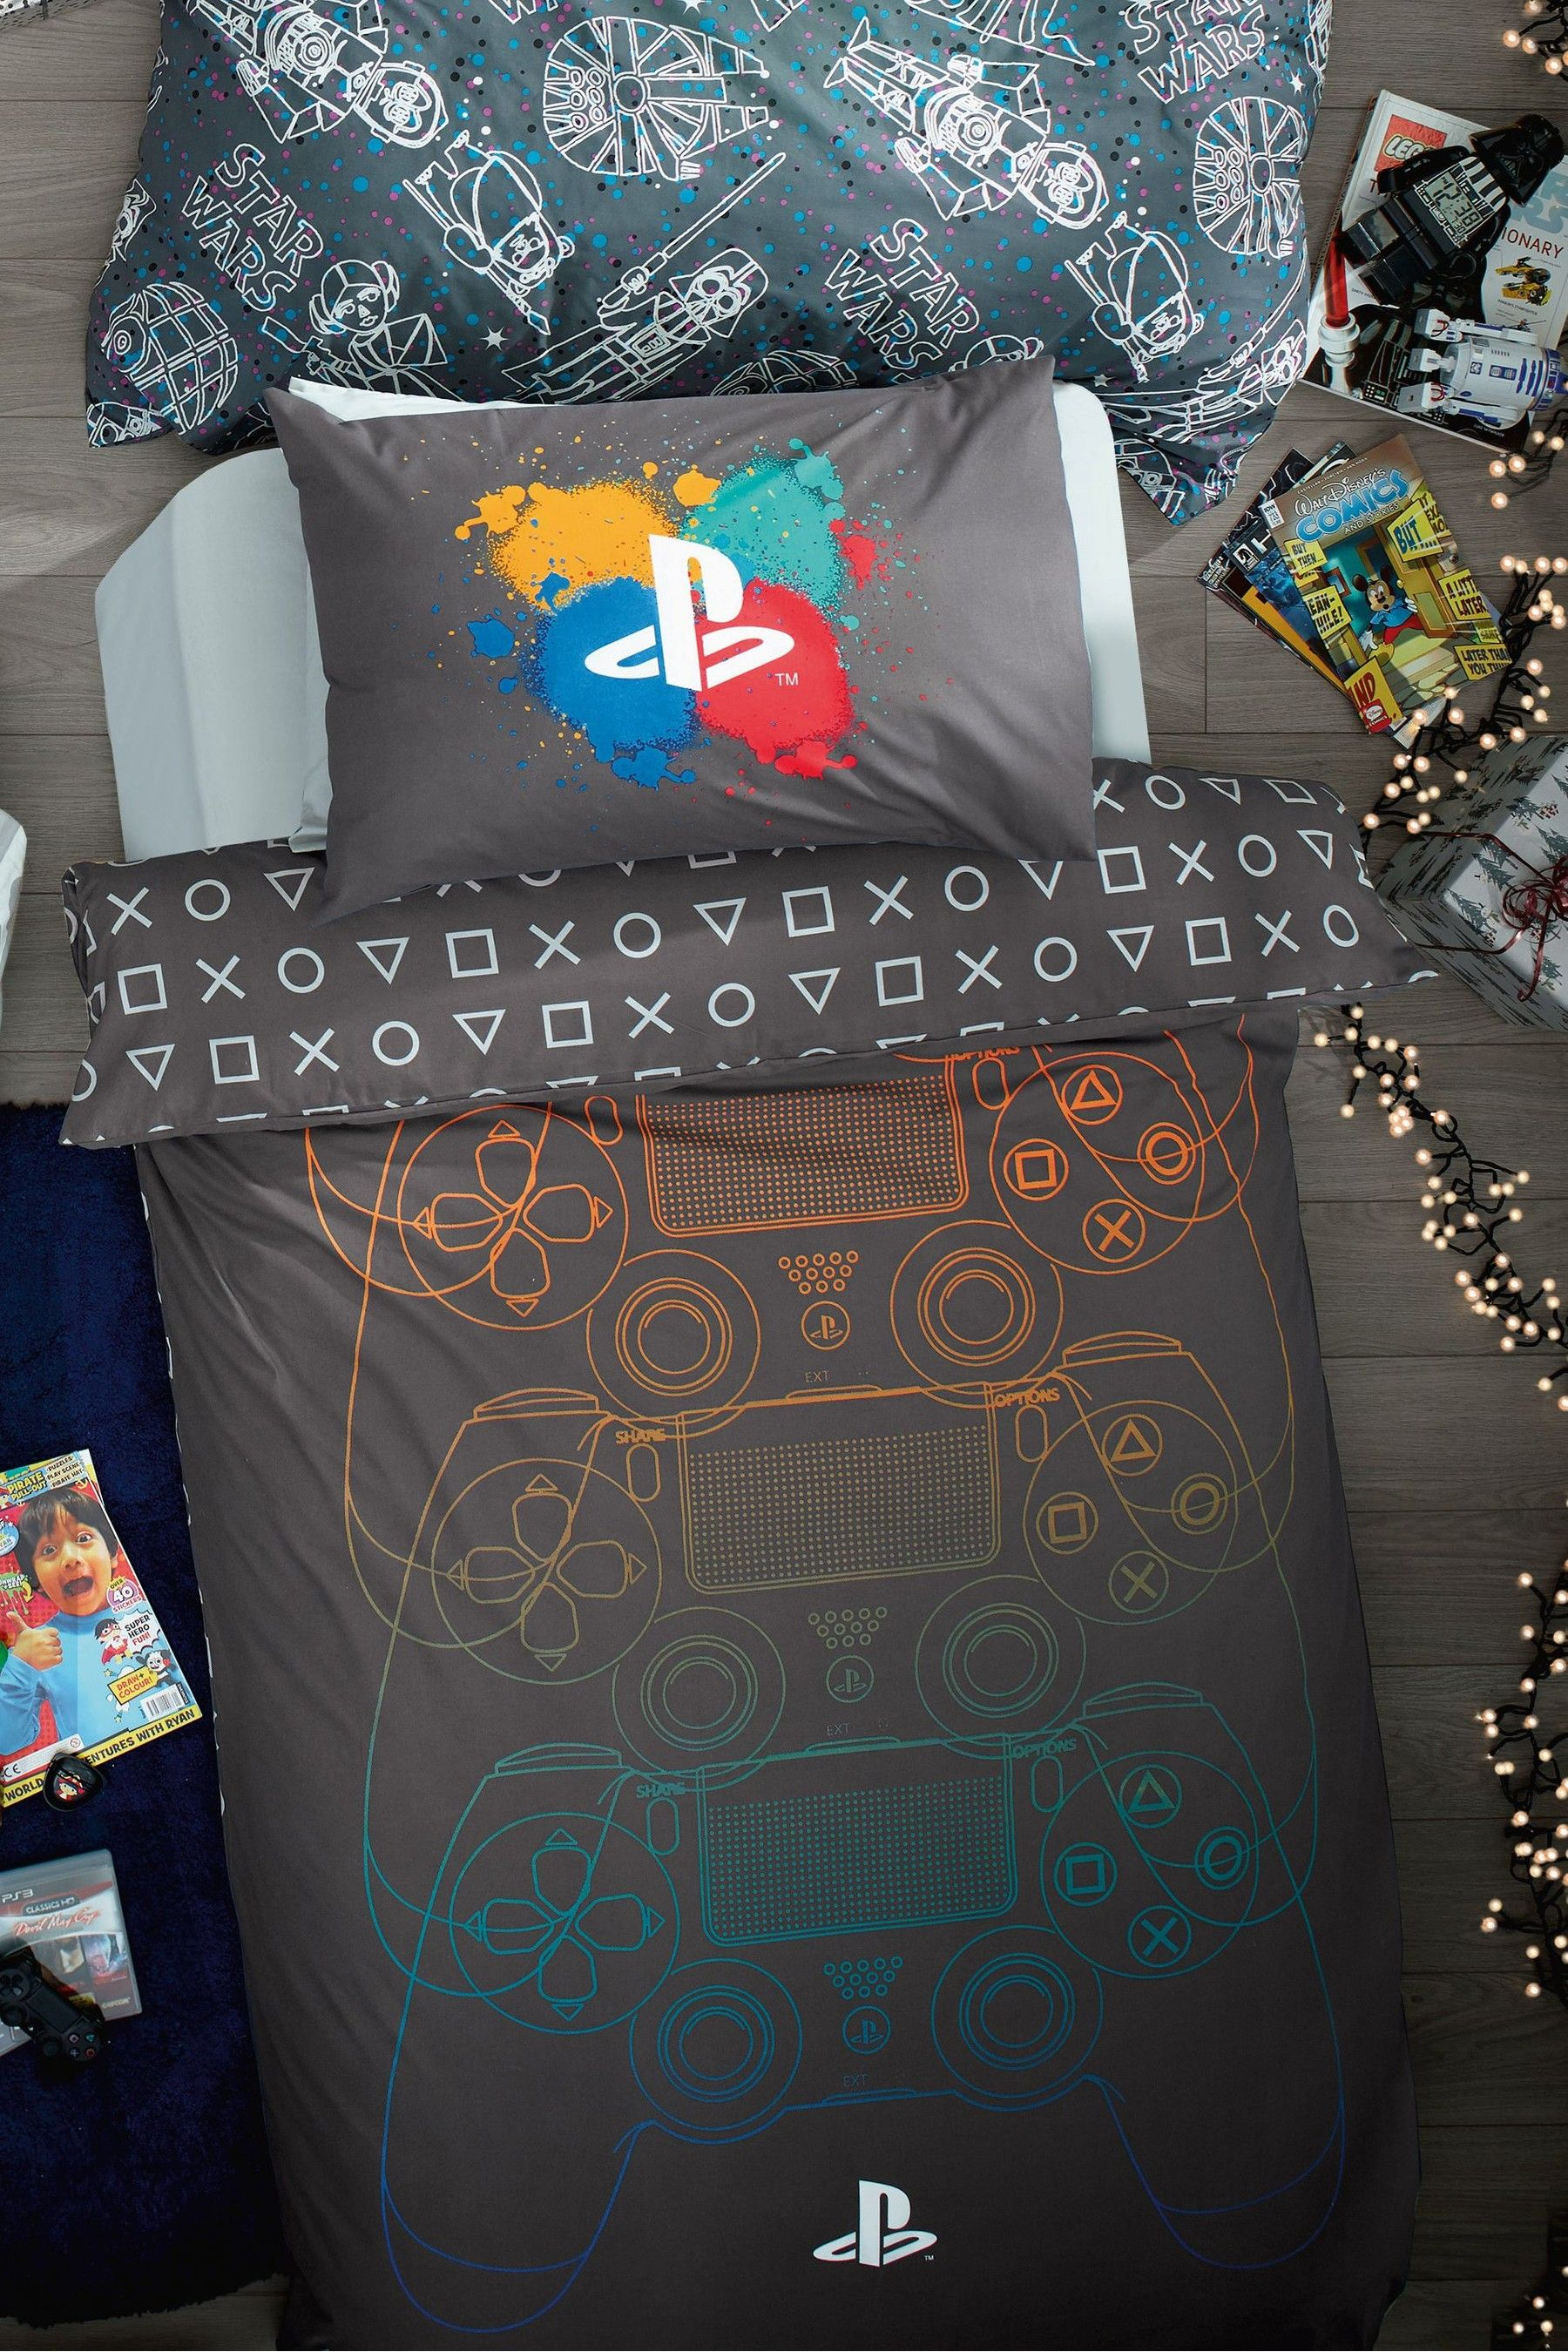 PlayStation Duvet Cover and Pillowcase